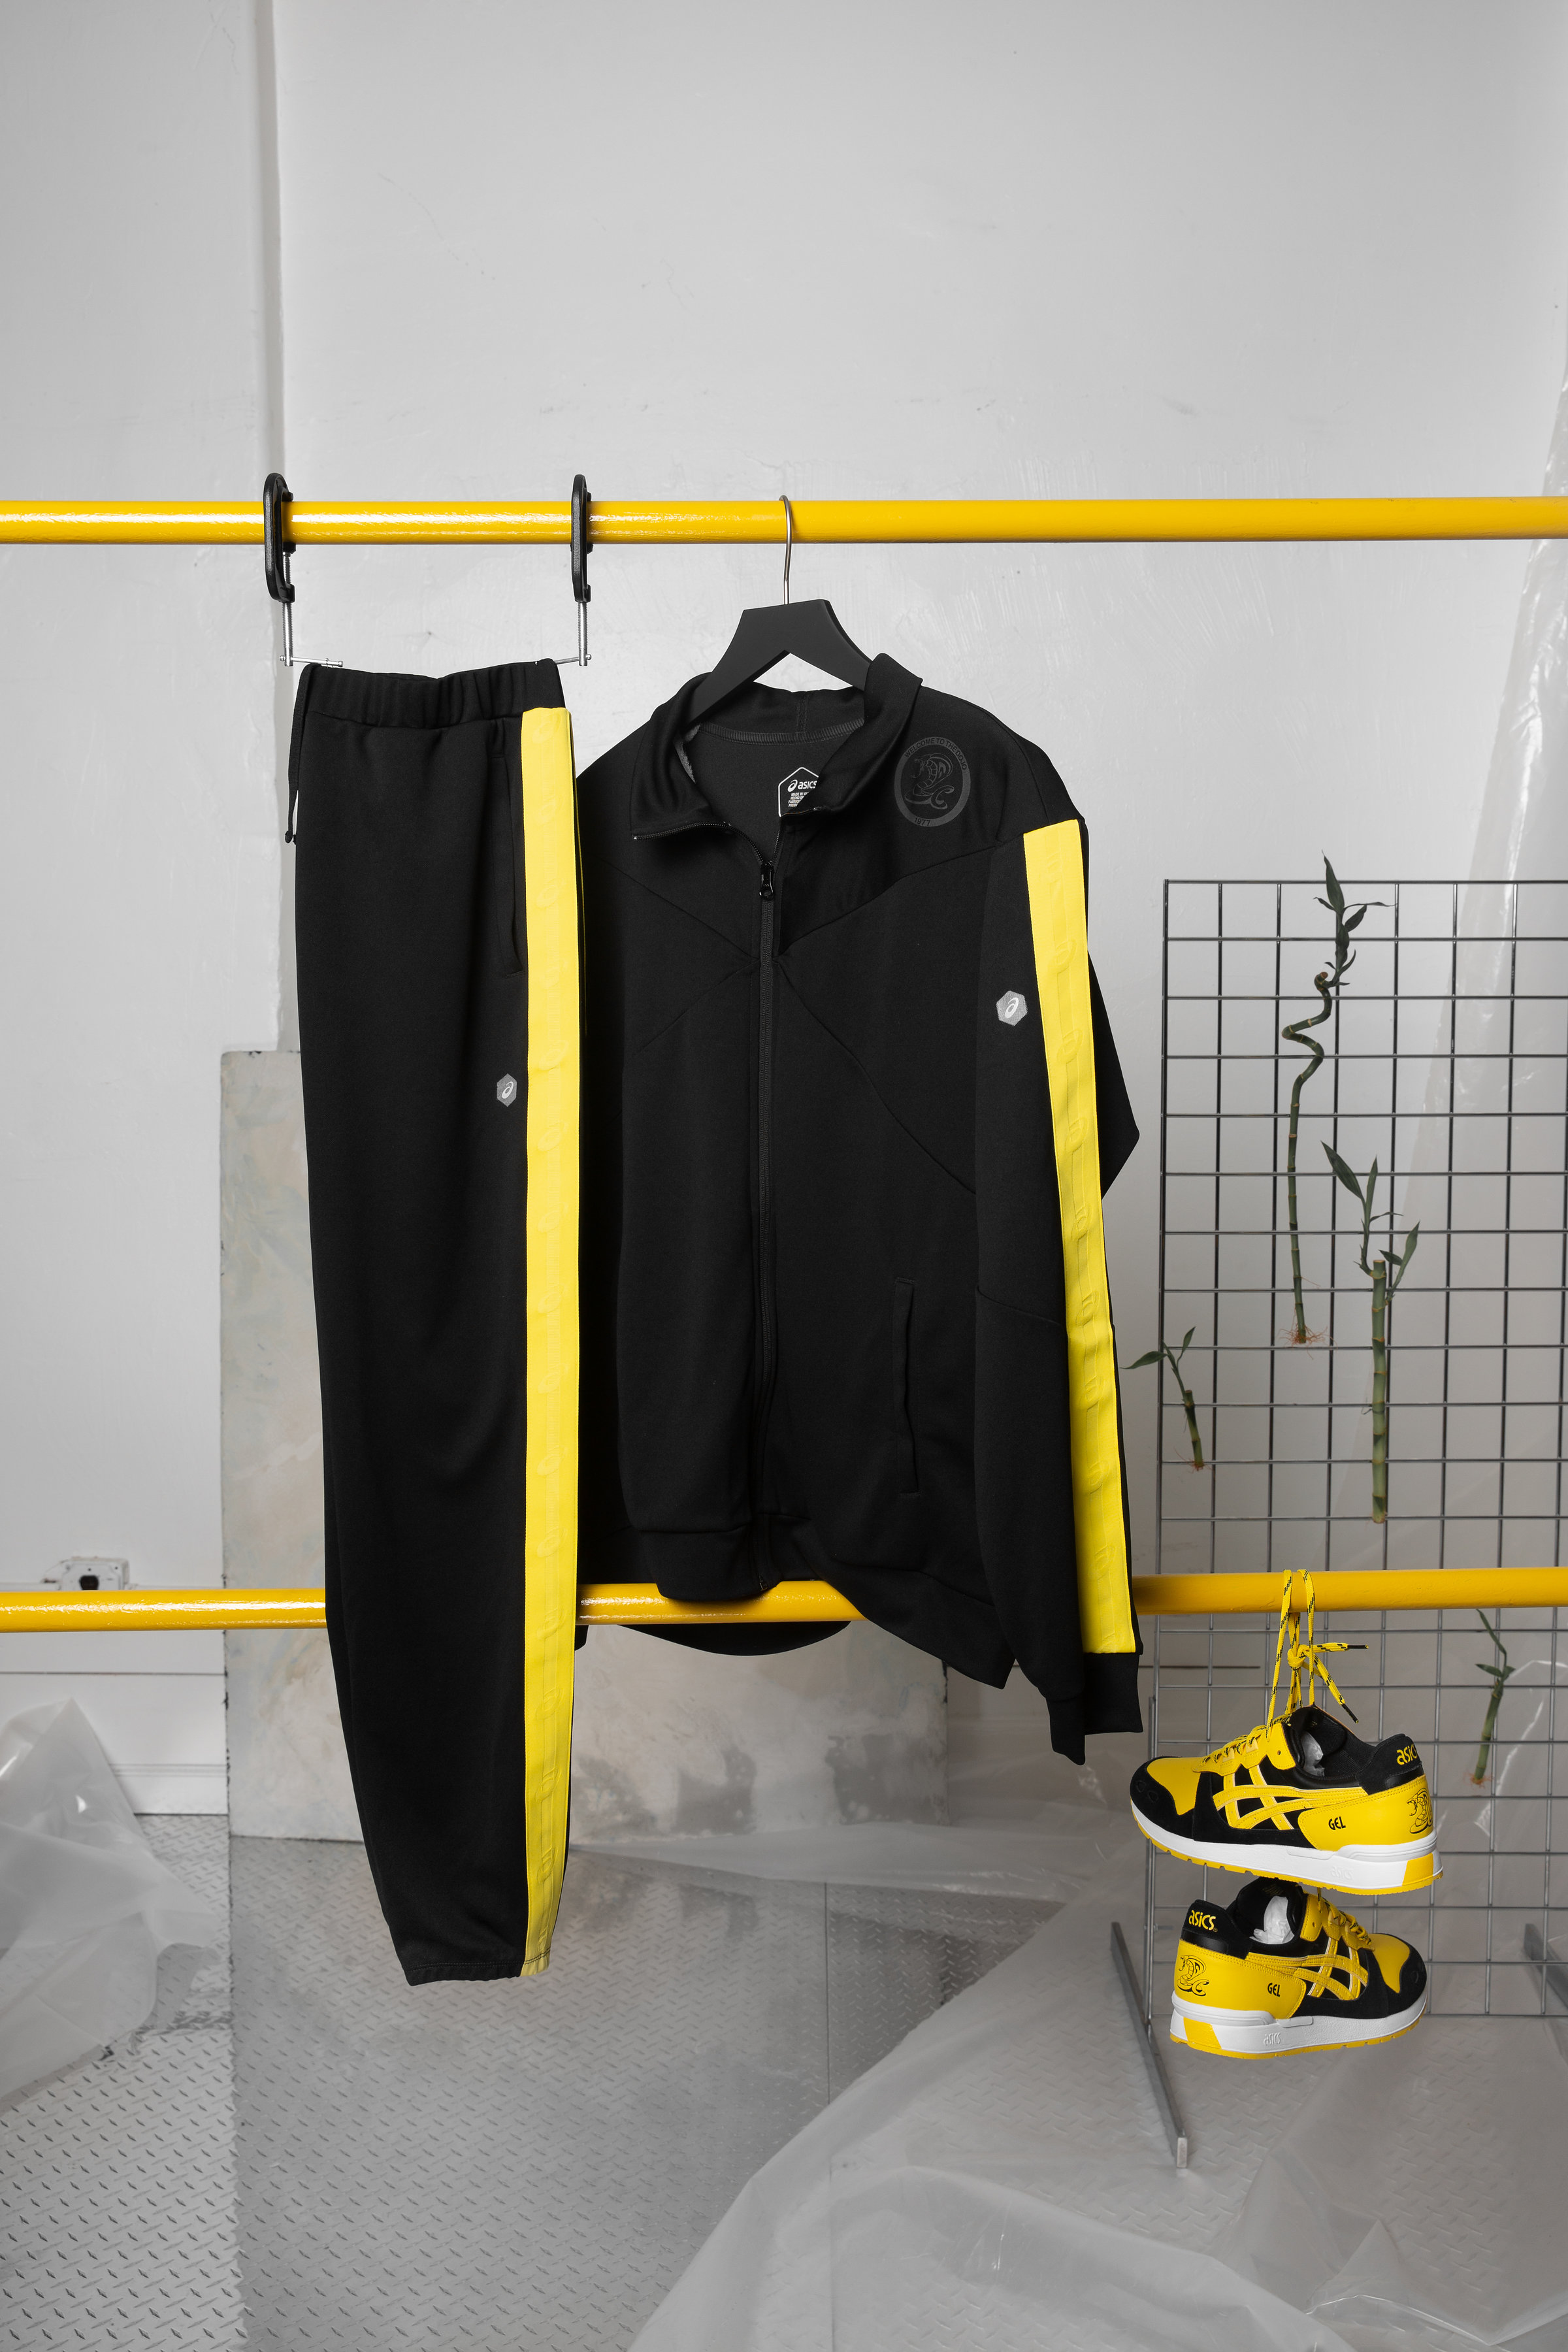 reputable site 1b200 0d223 The Foot Locker x AsicsTiger 'Welcome to the Dojo' Pack Has ...